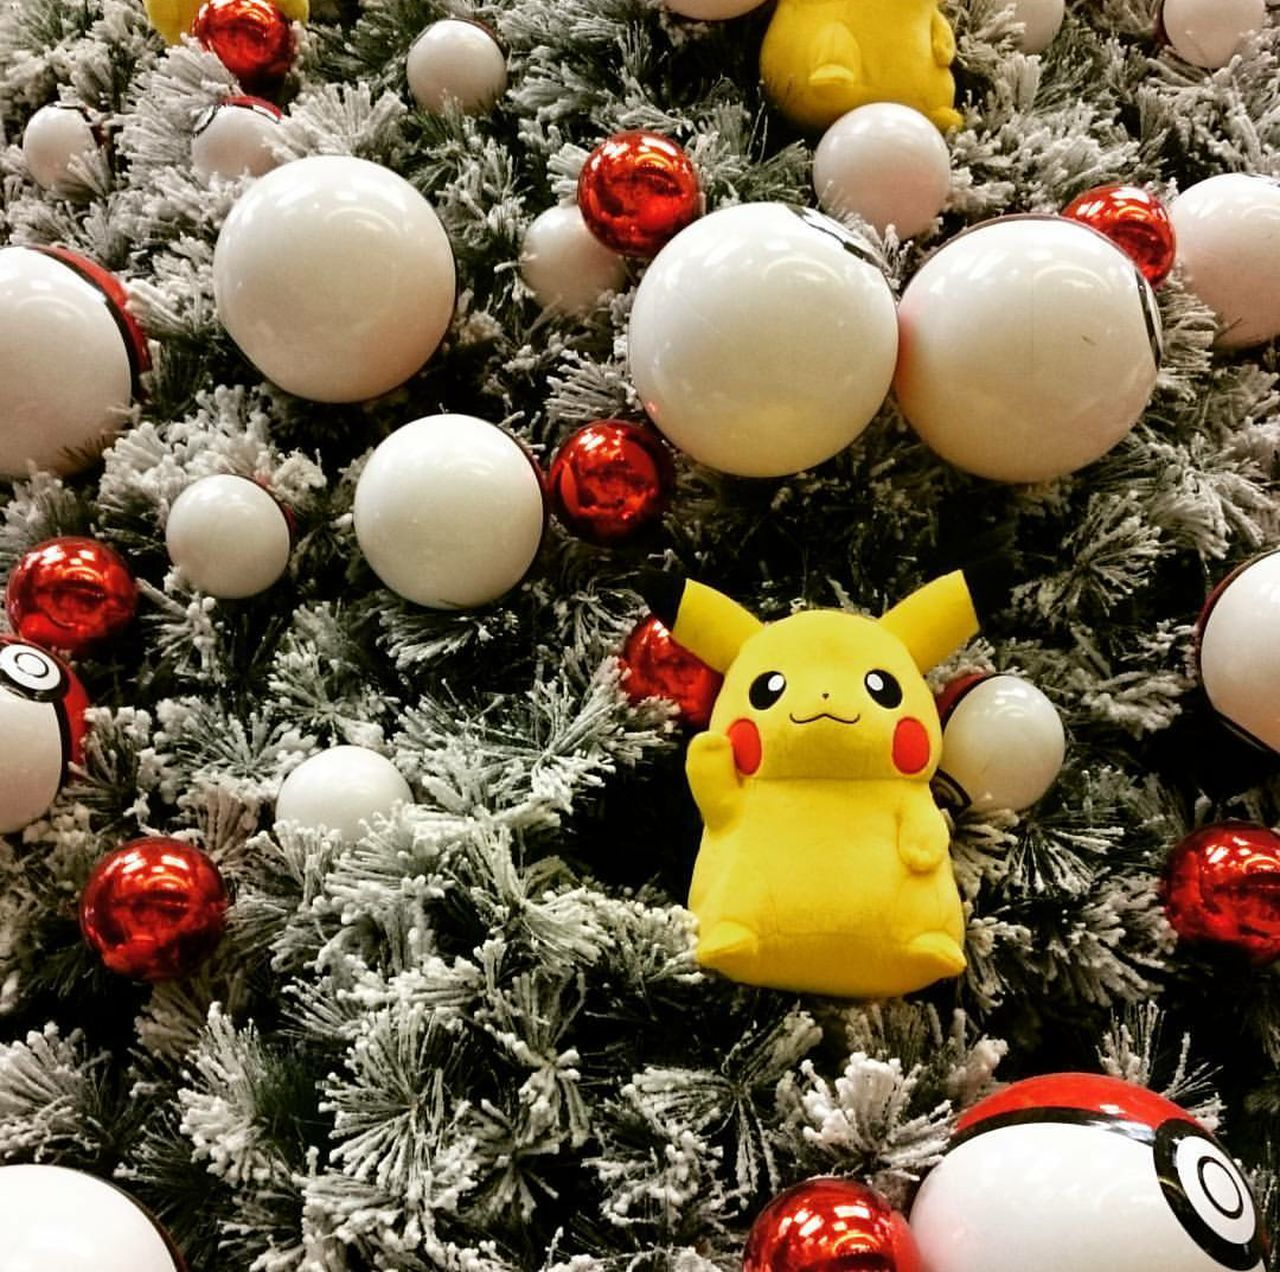 Red Celebration Balloon No People Tree Close-up Astrology Sign Outdoors Day Pikachu Christmas Decoration Christmastree 🎄 Indoorsphotography Variation Indoors  Christmas Tree Christmas Airport